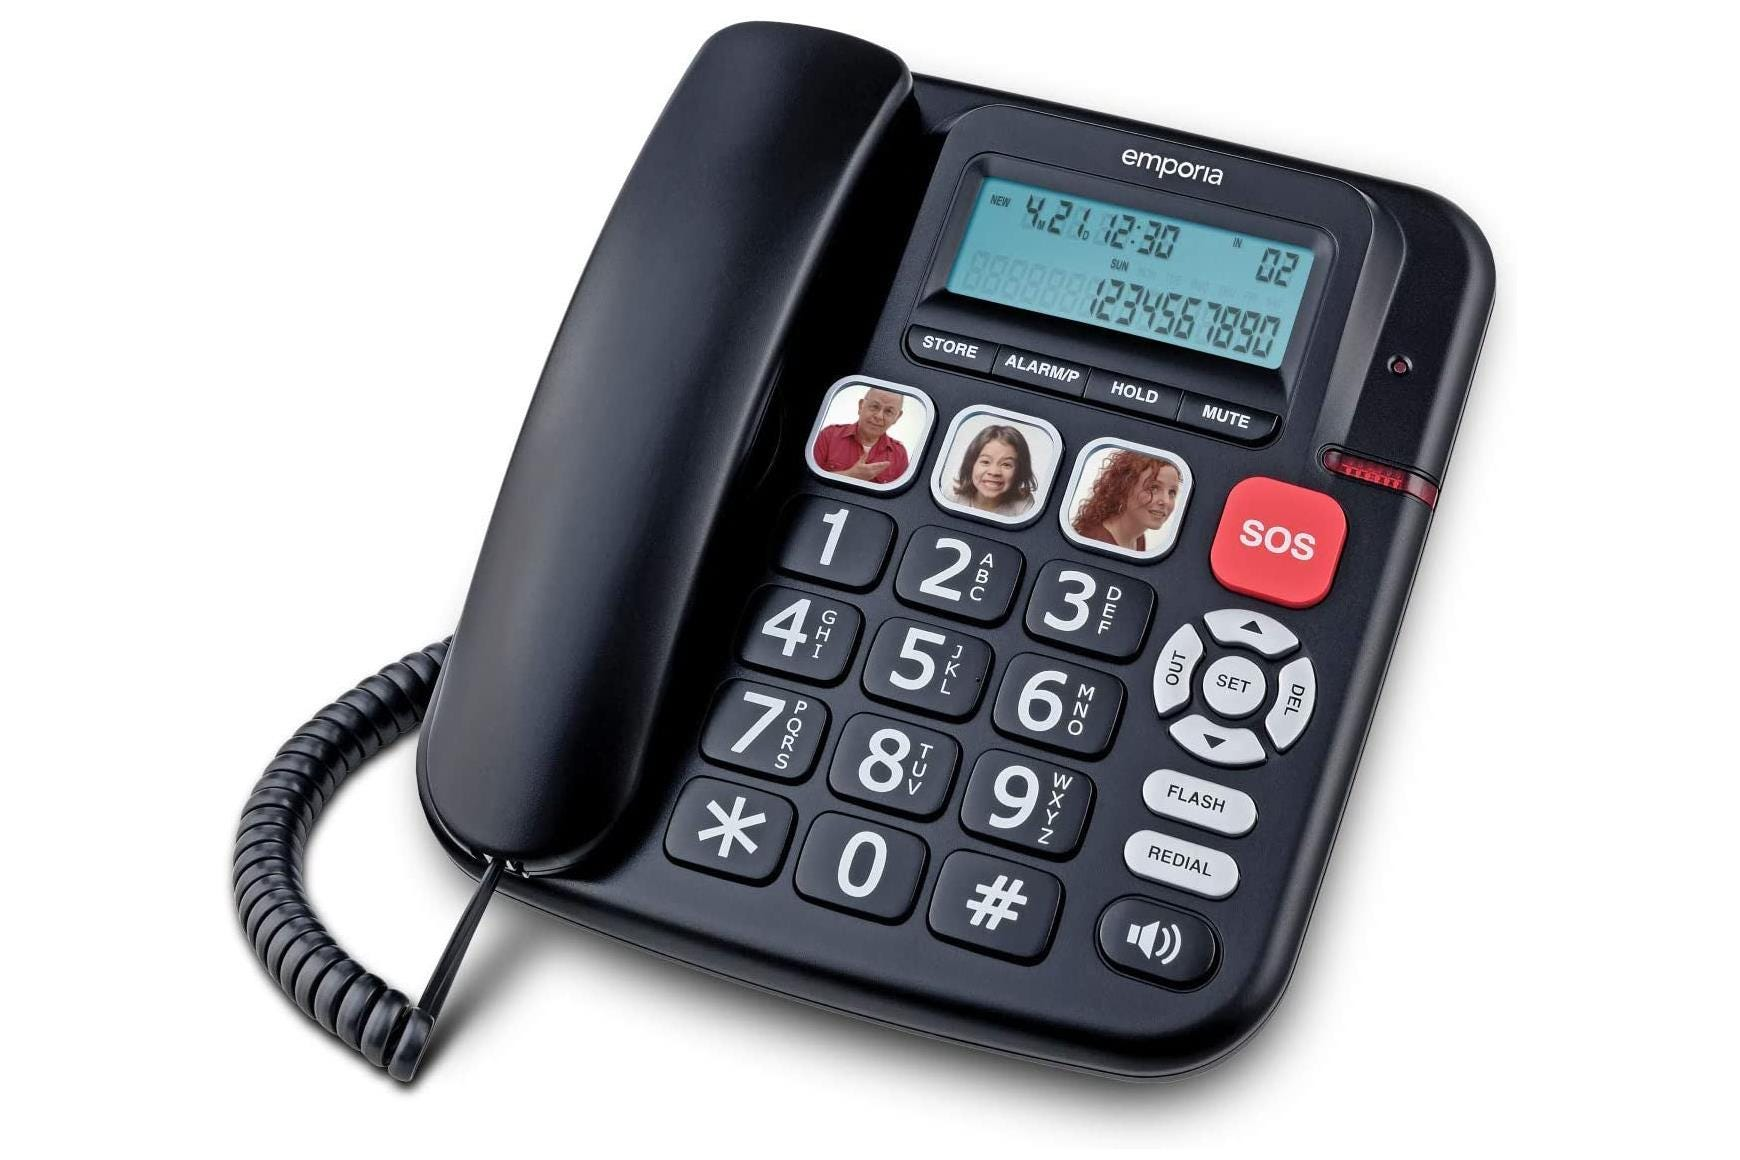 Image of Emporia KFT19 Corded Phone with SOS Button